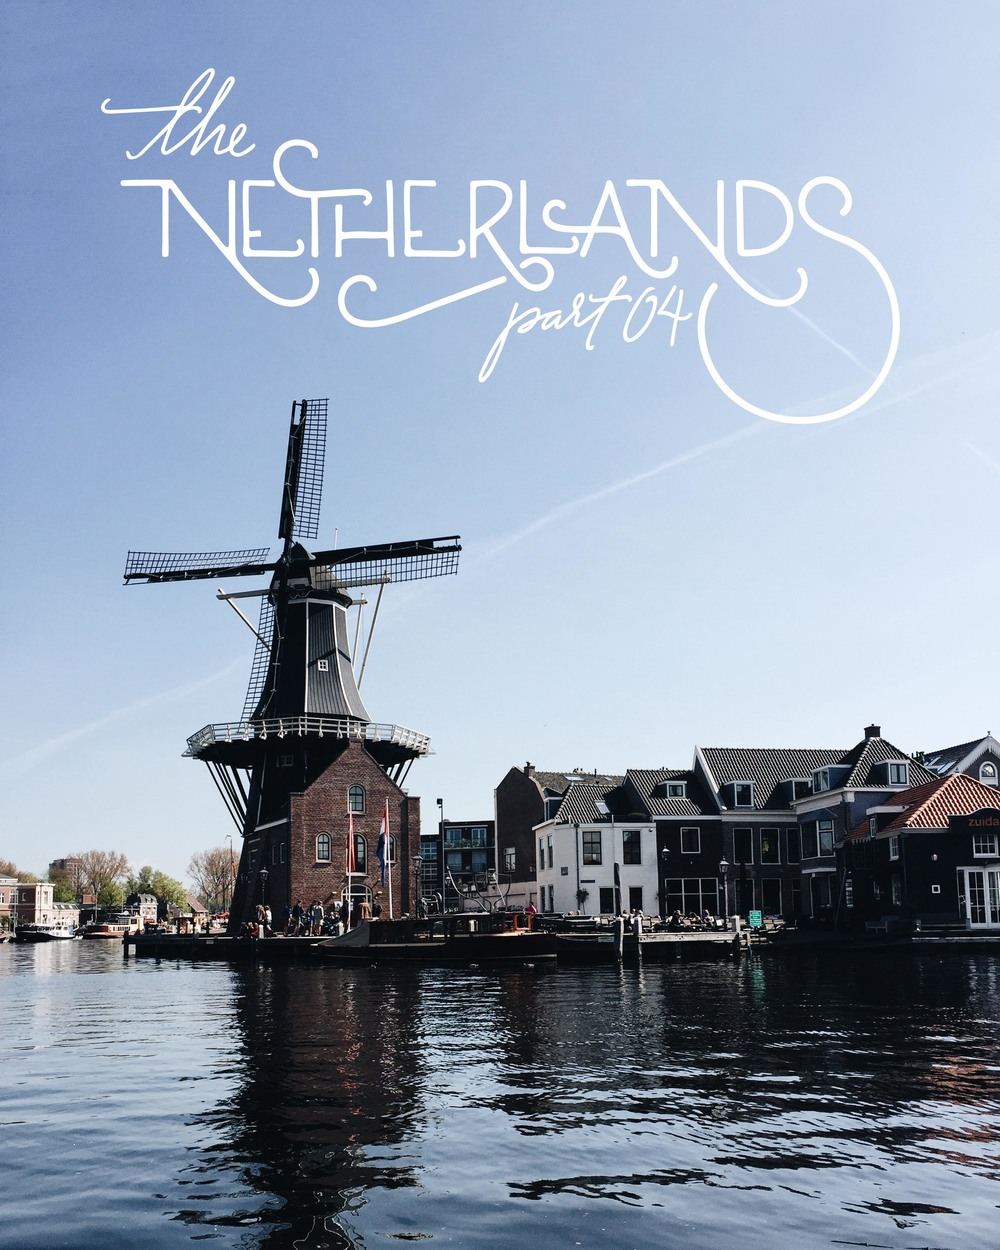 The Netherlands: Dutch Cities | Part 02 | Sea of Atlas